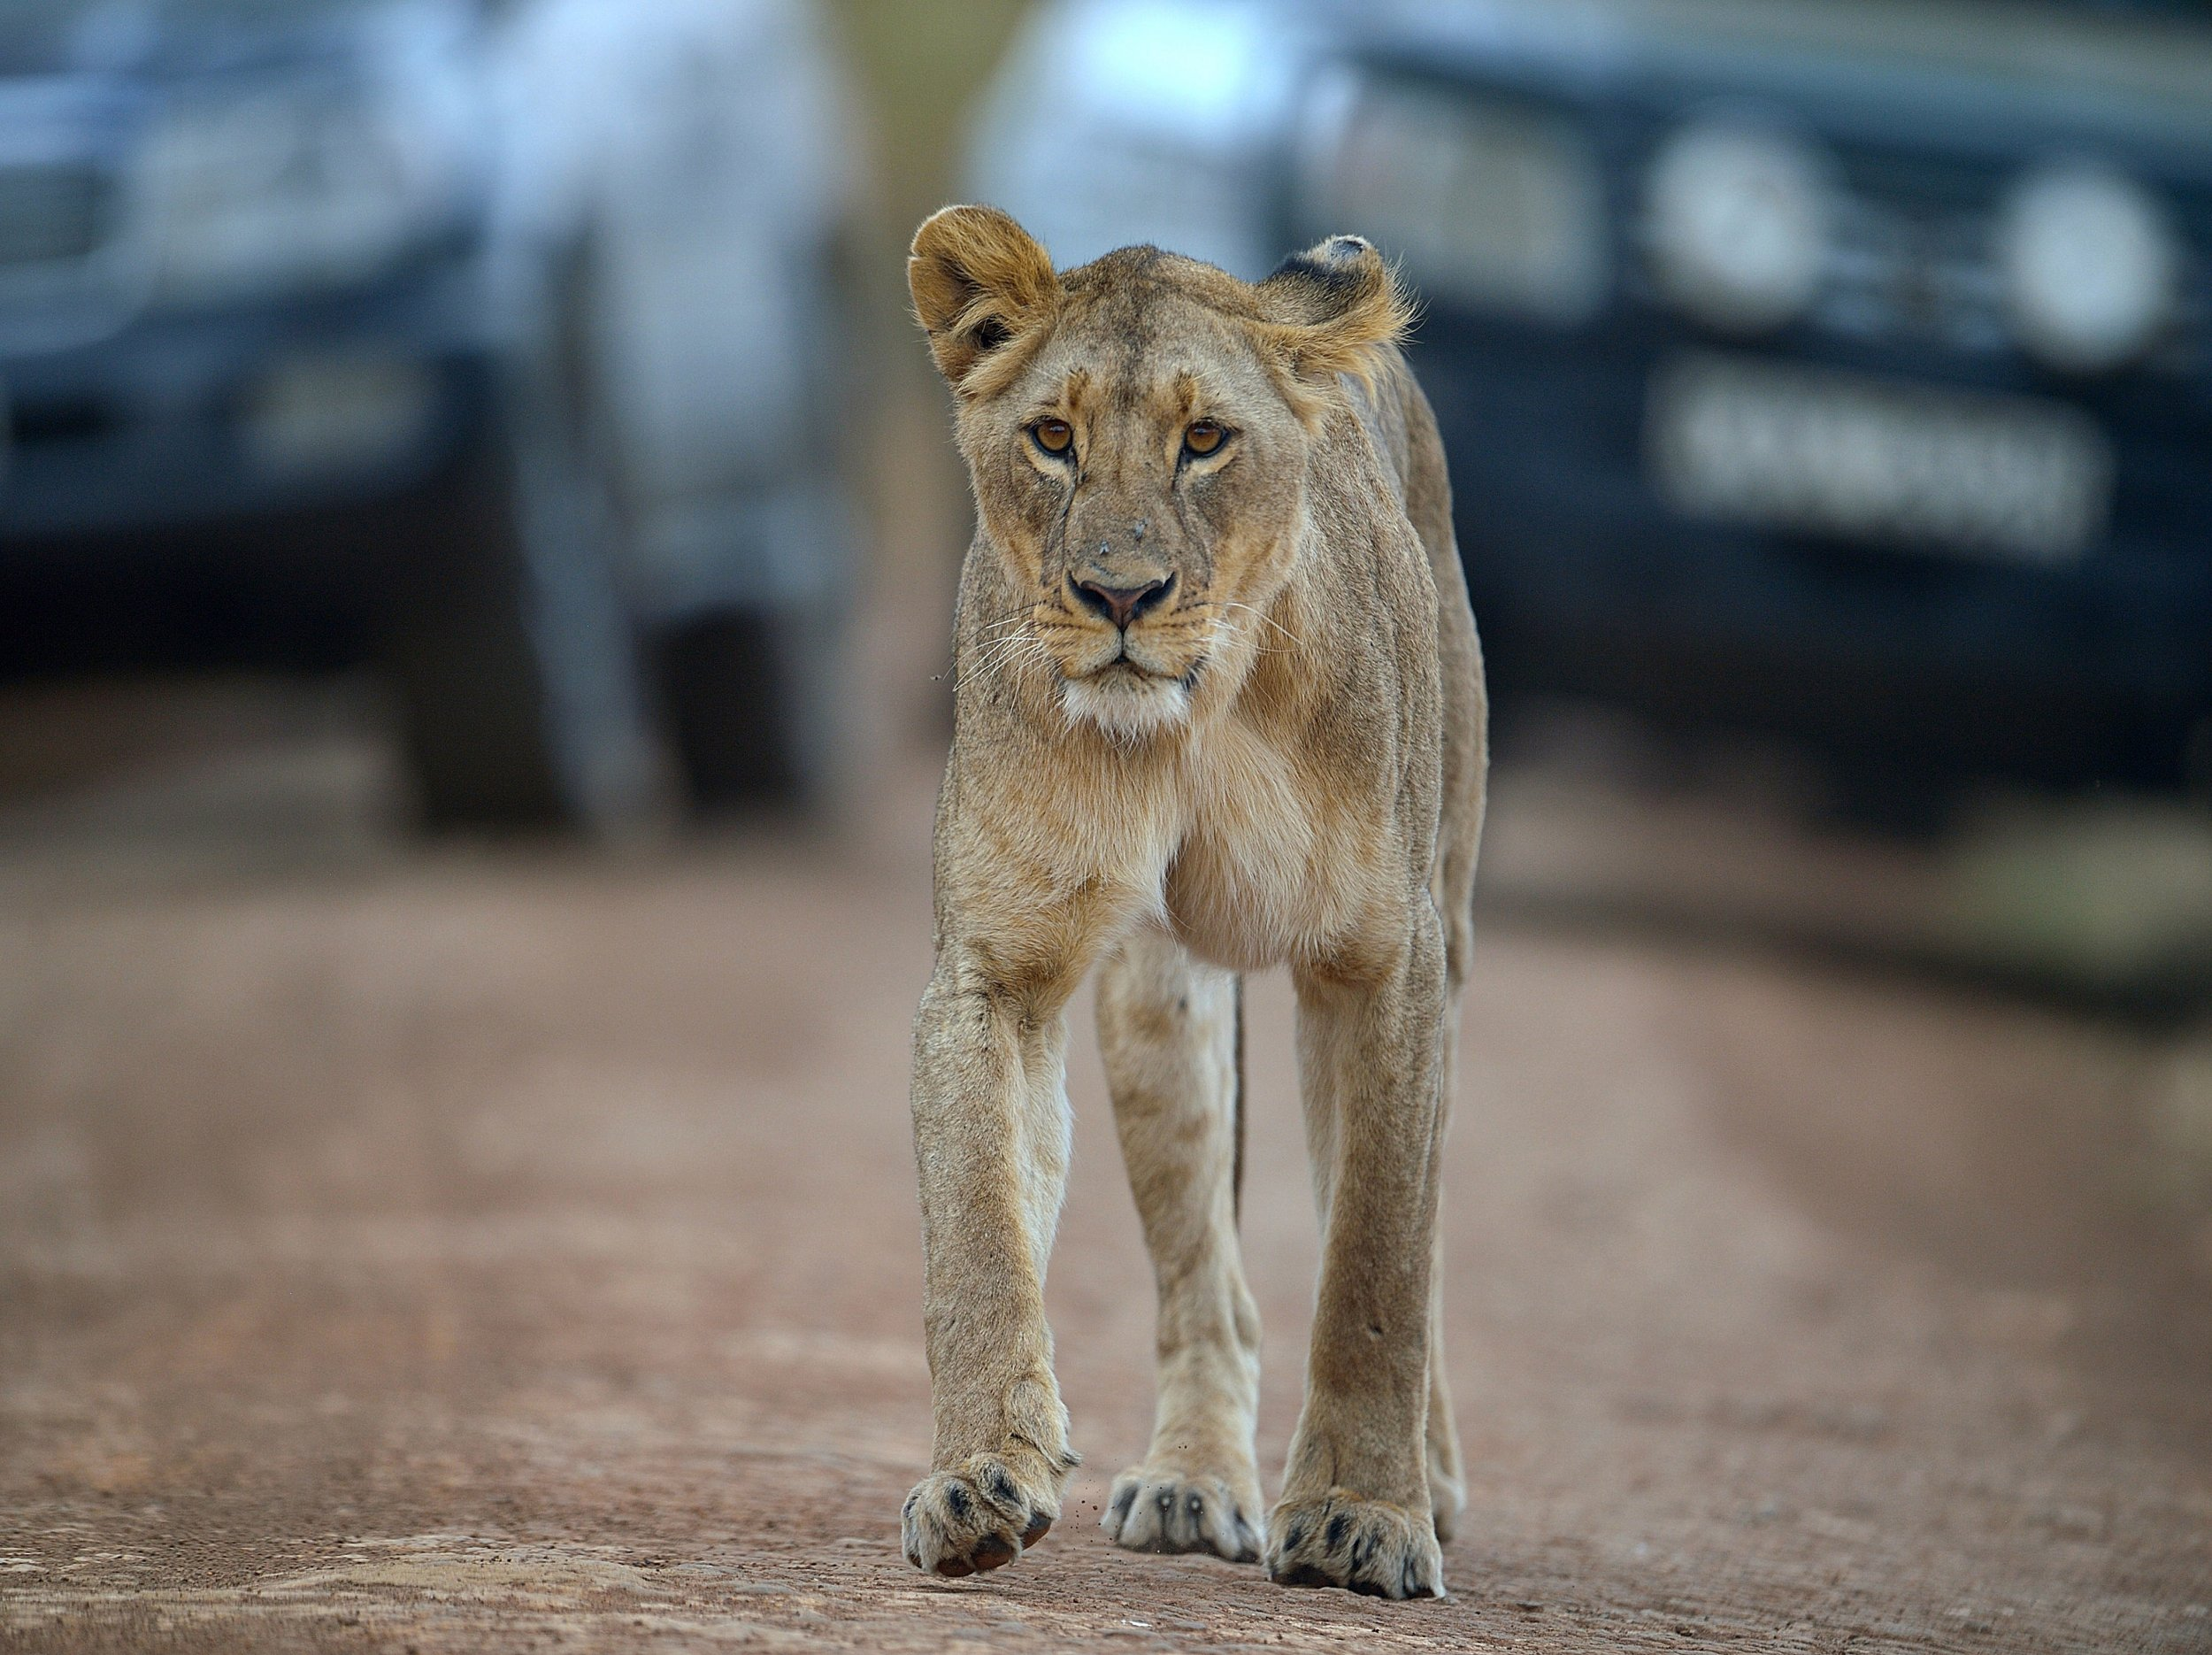 A lioness walks in Nairobi National Park.